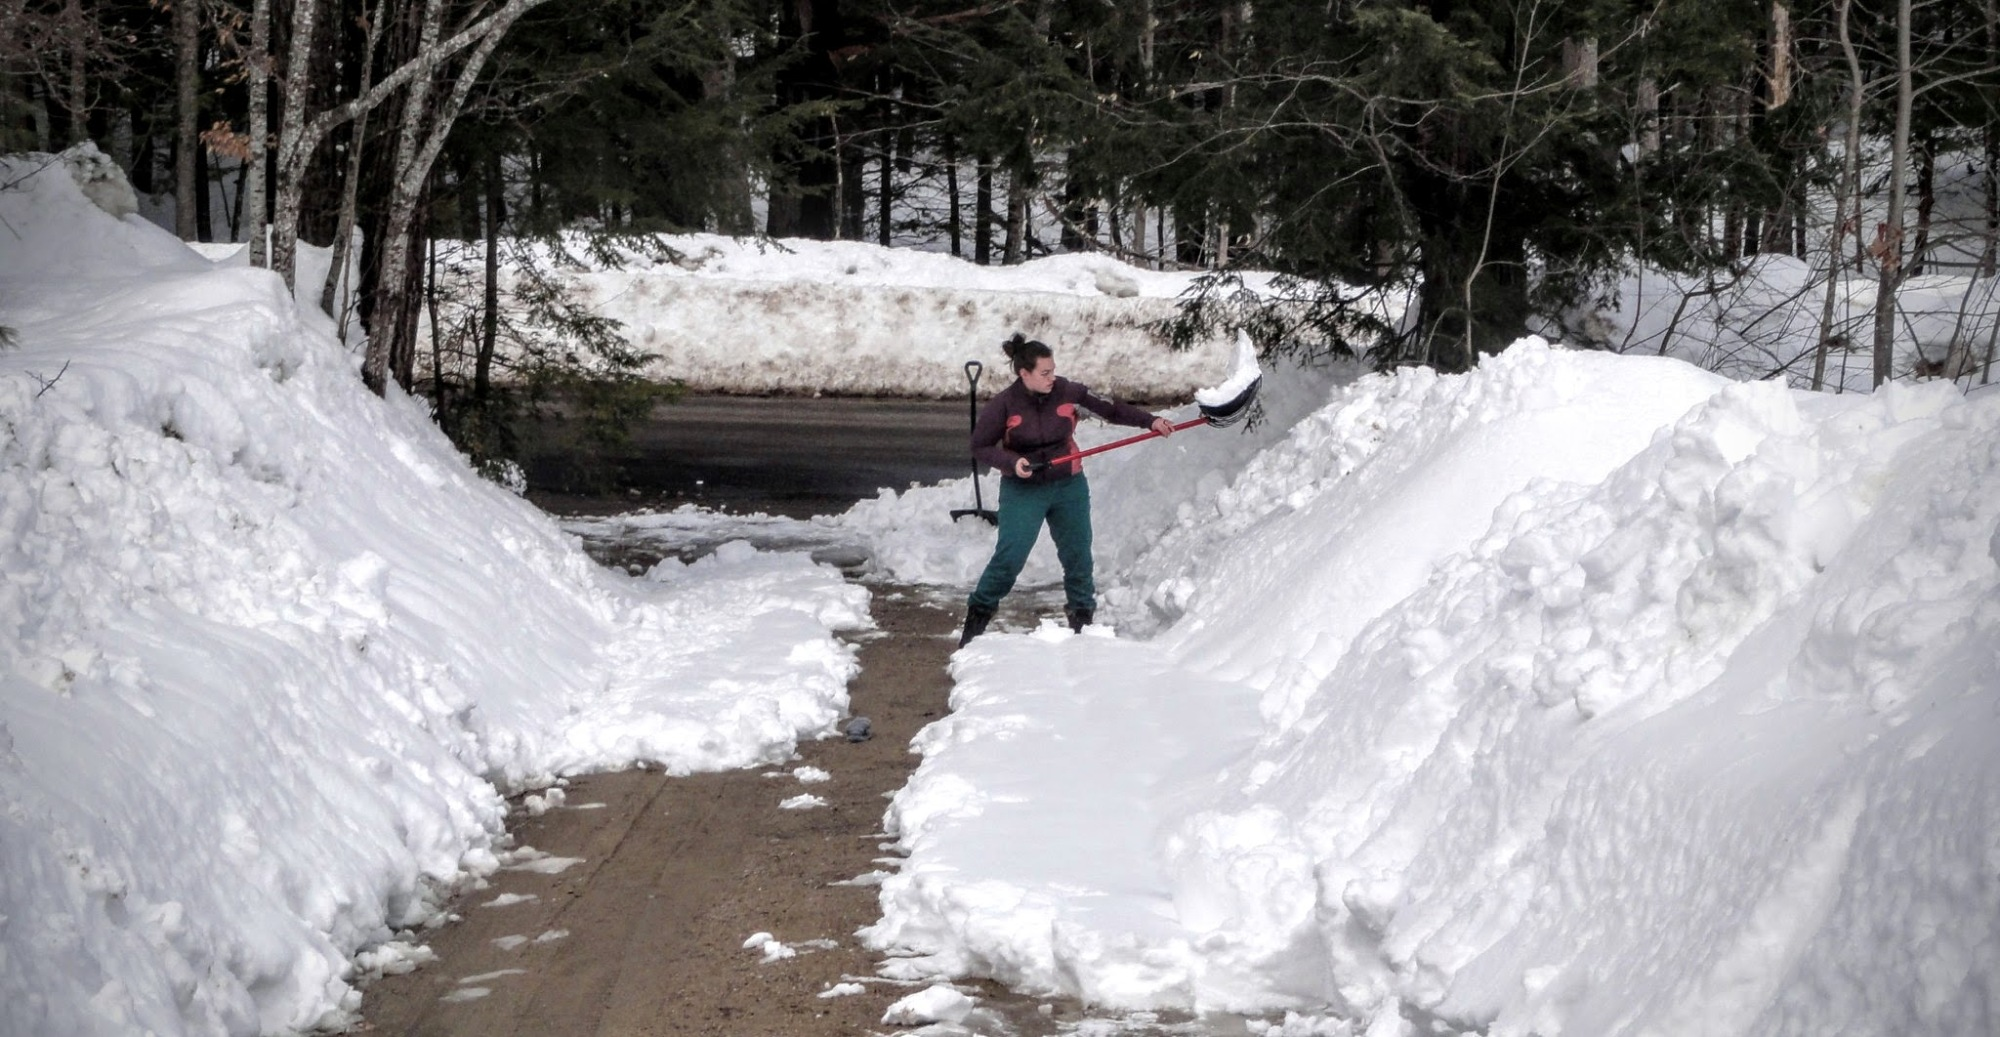 shoveling snow efficiently with the divide and conquer technique